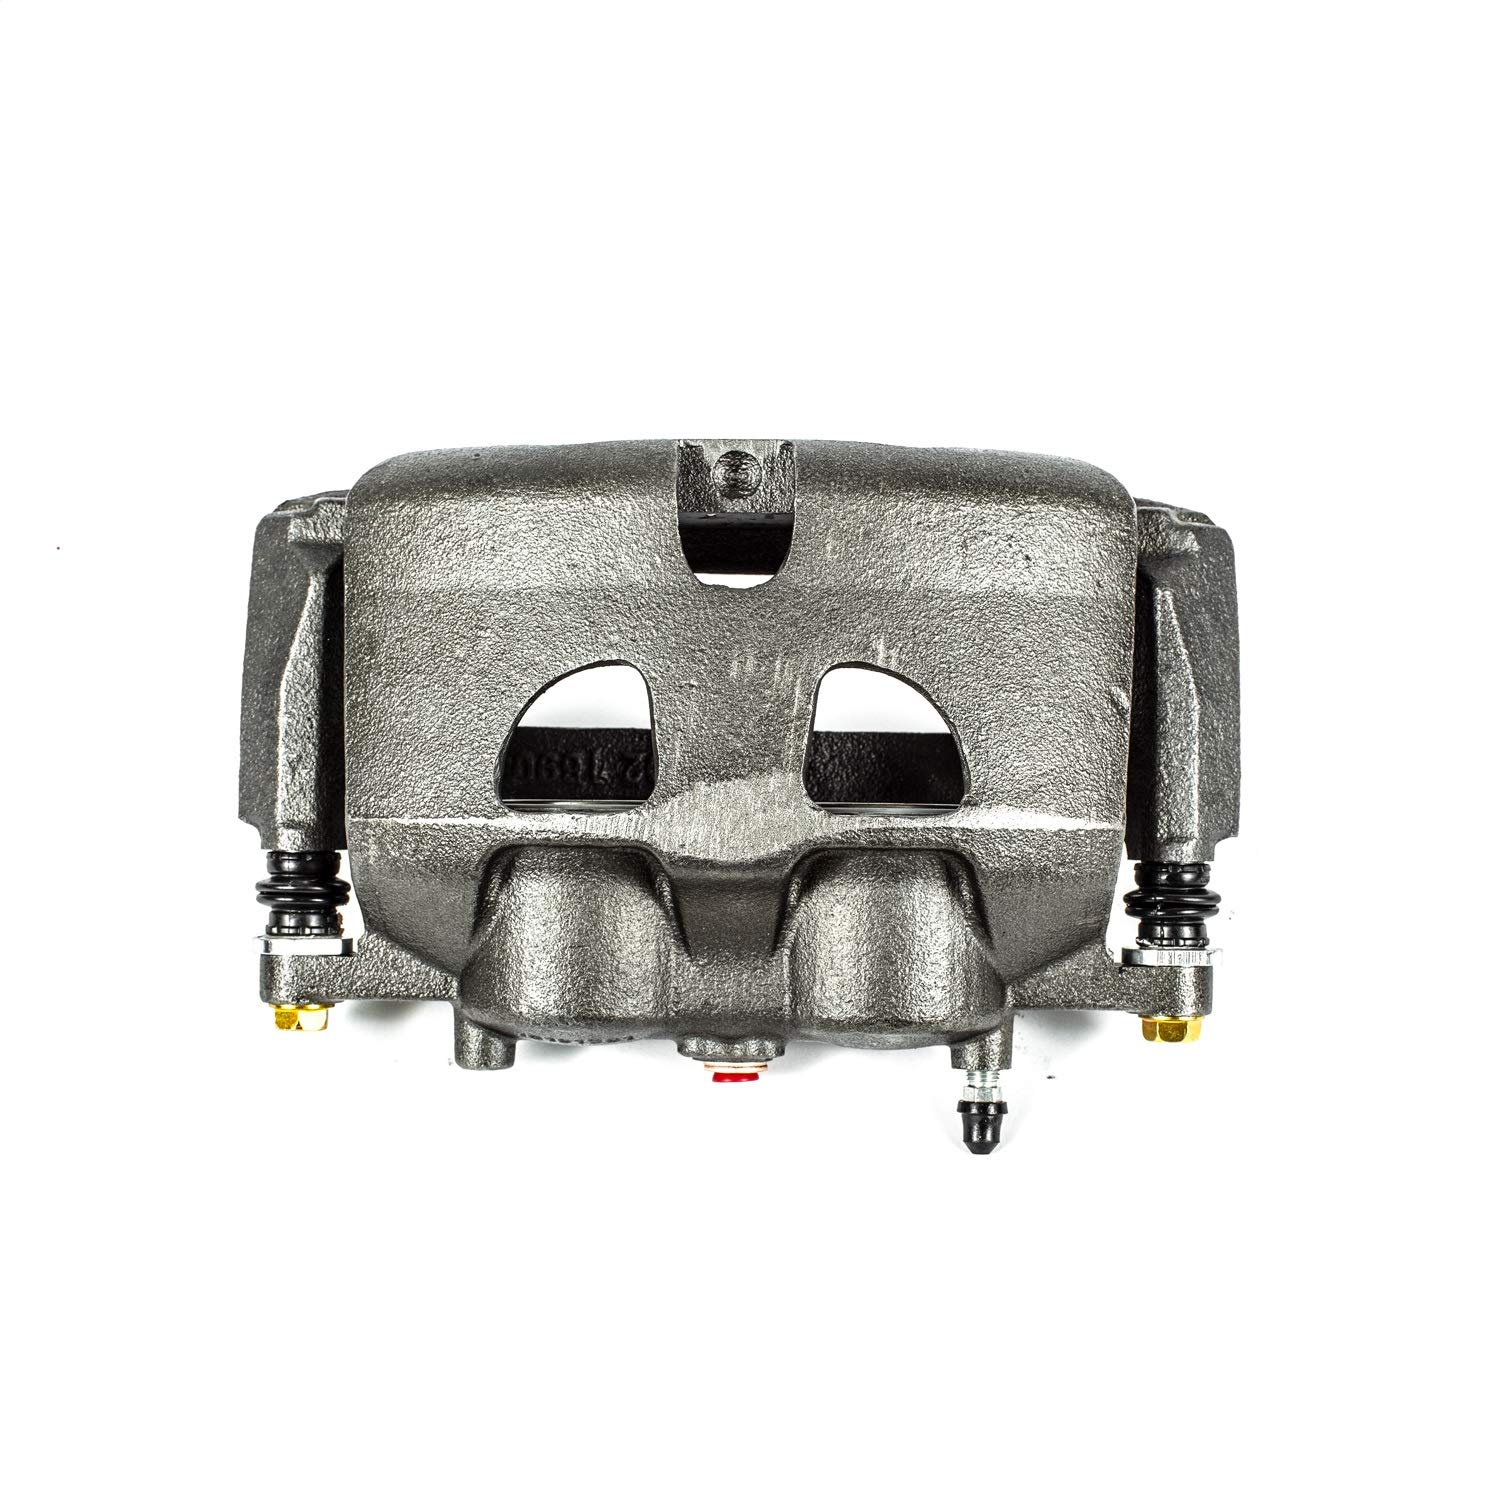 Power Stop L5405 Autospecialty Remanufactured Caliper